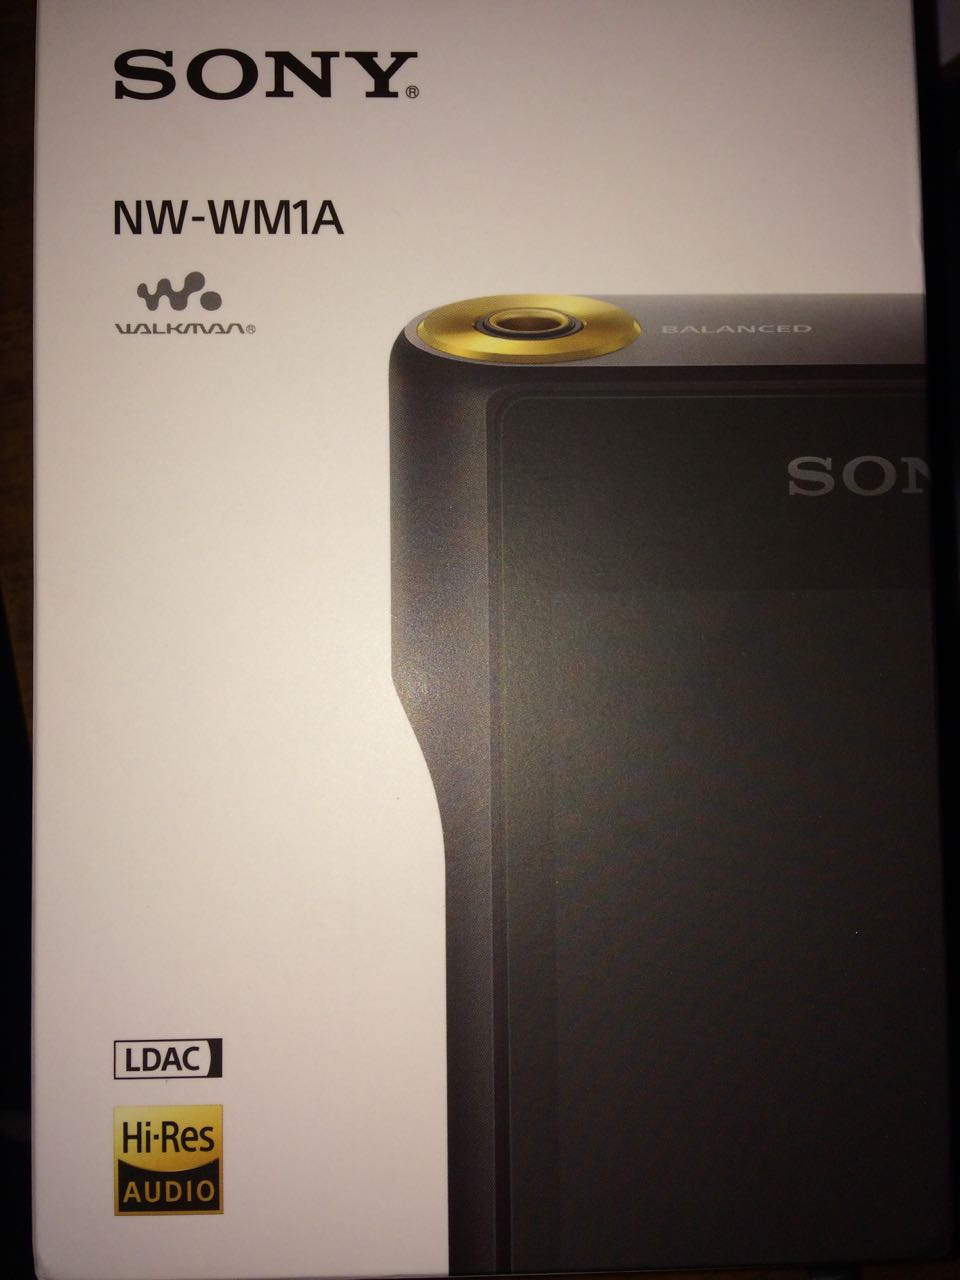 Sony Nw Wm1z Wm1a Page 347 Headphone Reviews And Discussion Walkman With High Resolution Audio A36 Black Img 20161201 Wa0017